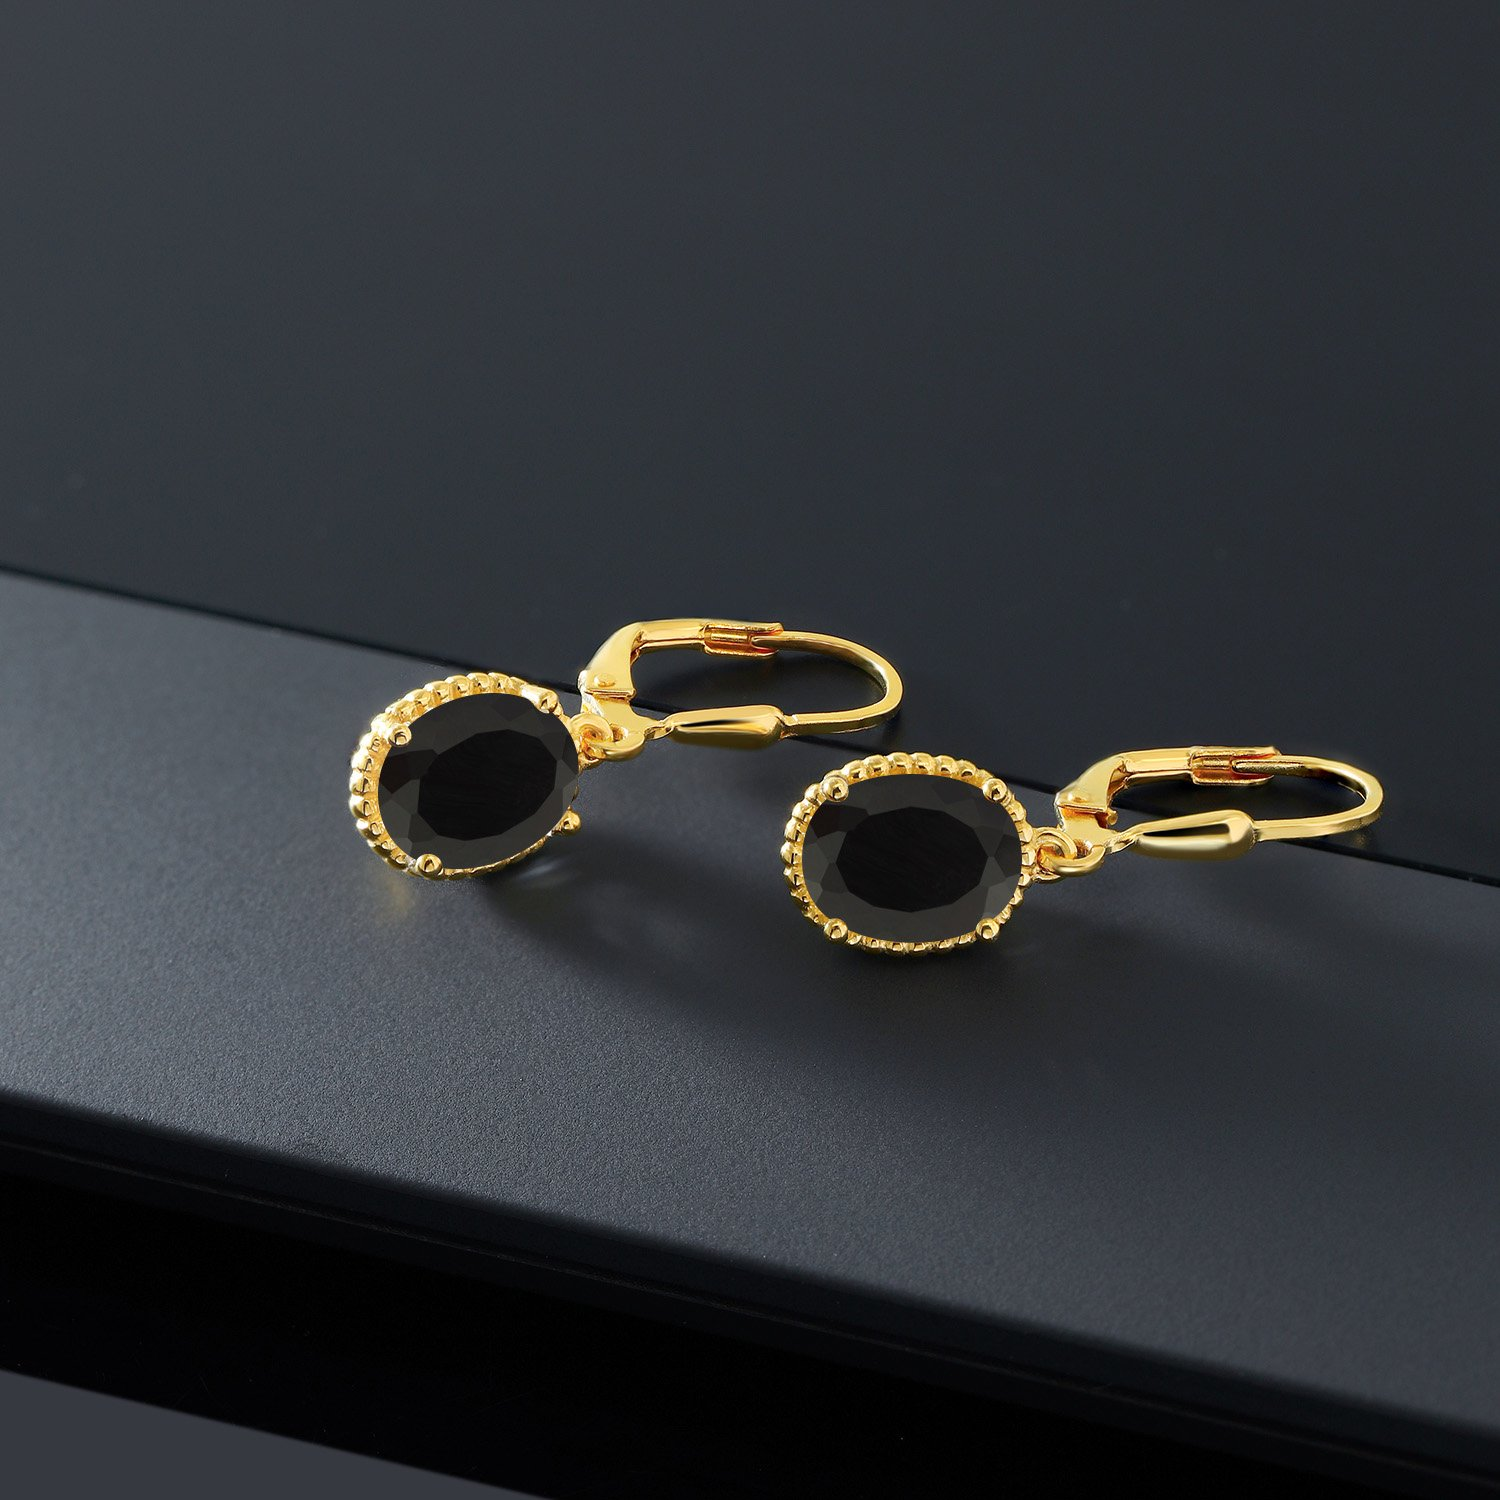 4.00 Ct Oval Black Onyx 18K Yellow Gold Plated Silver 27mm Length Dangle Earrings by Gem Stone King (Image #4)